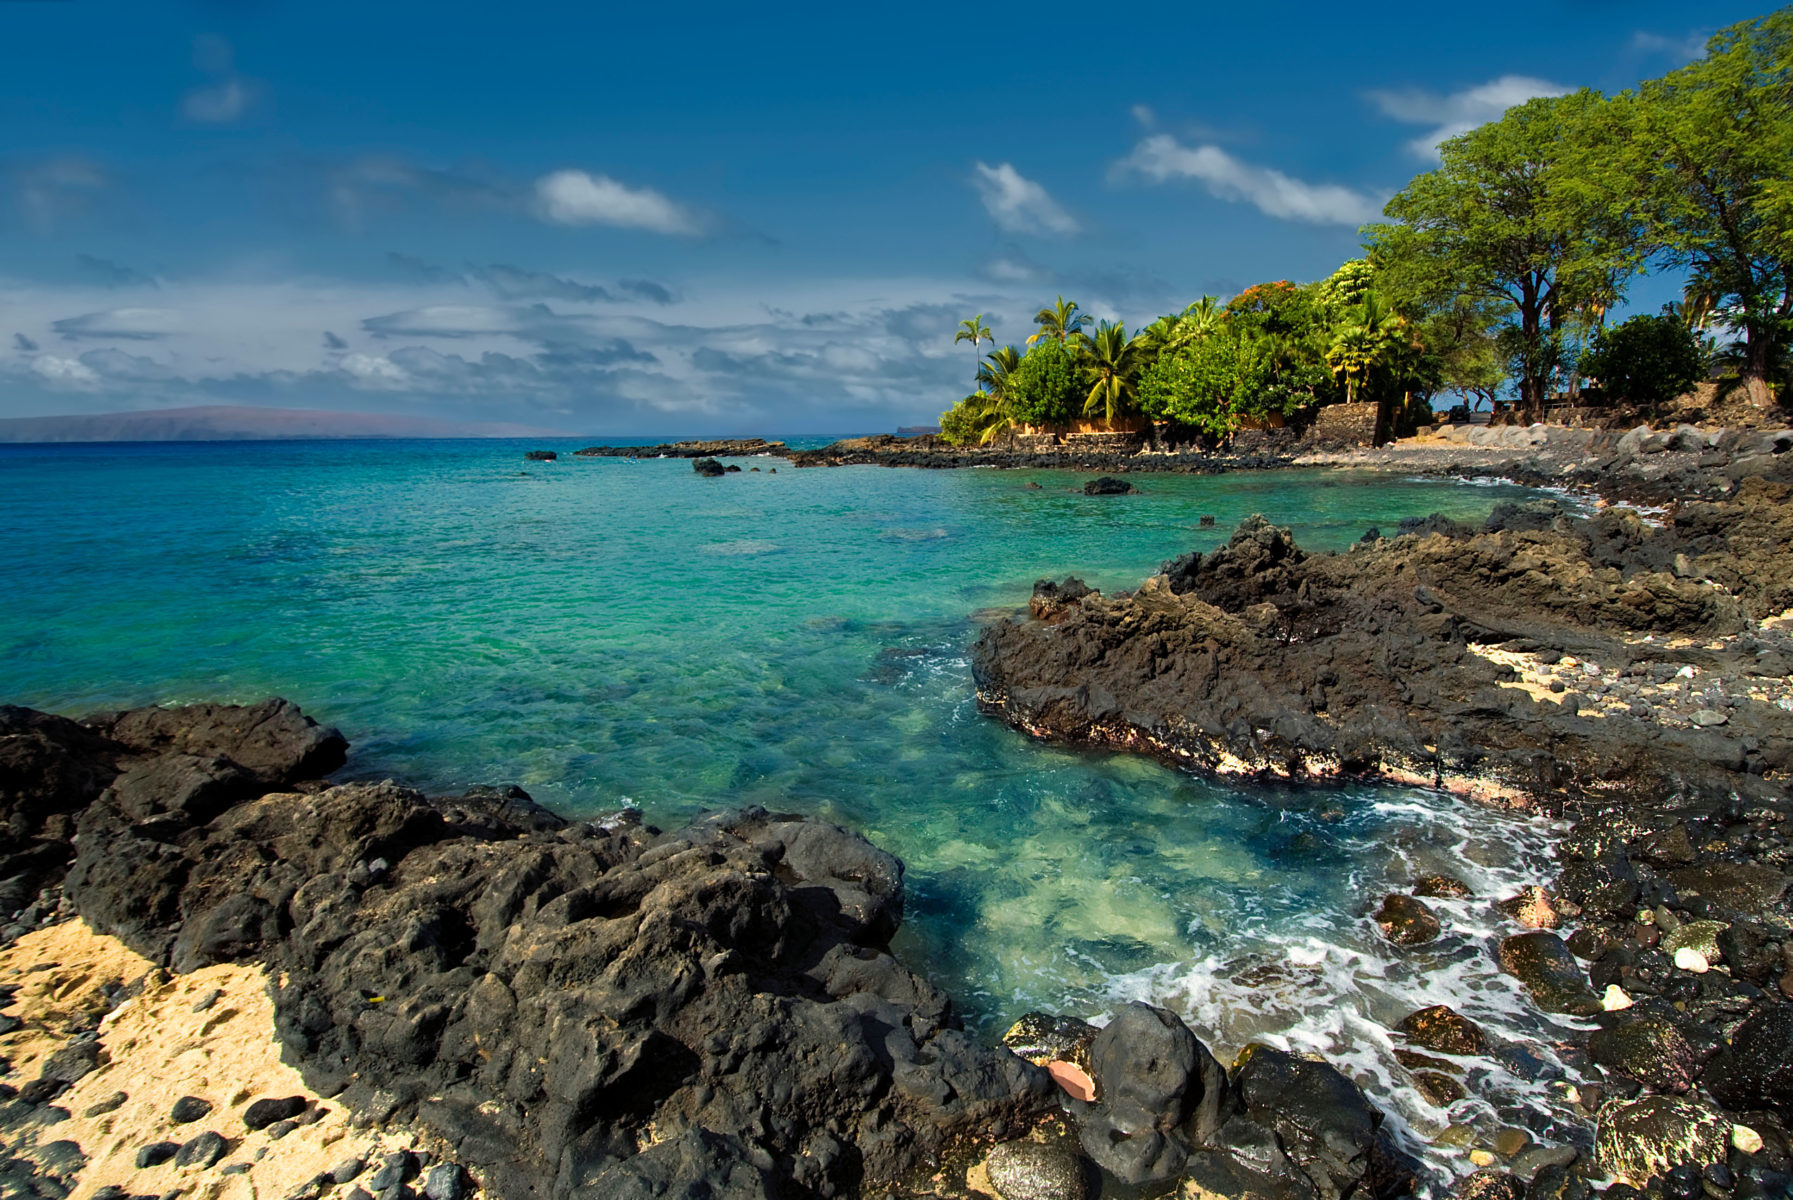 Maui snorkeling spots - Ahihi Bay in Waiala Cove, south Maui, Hawaii, USA